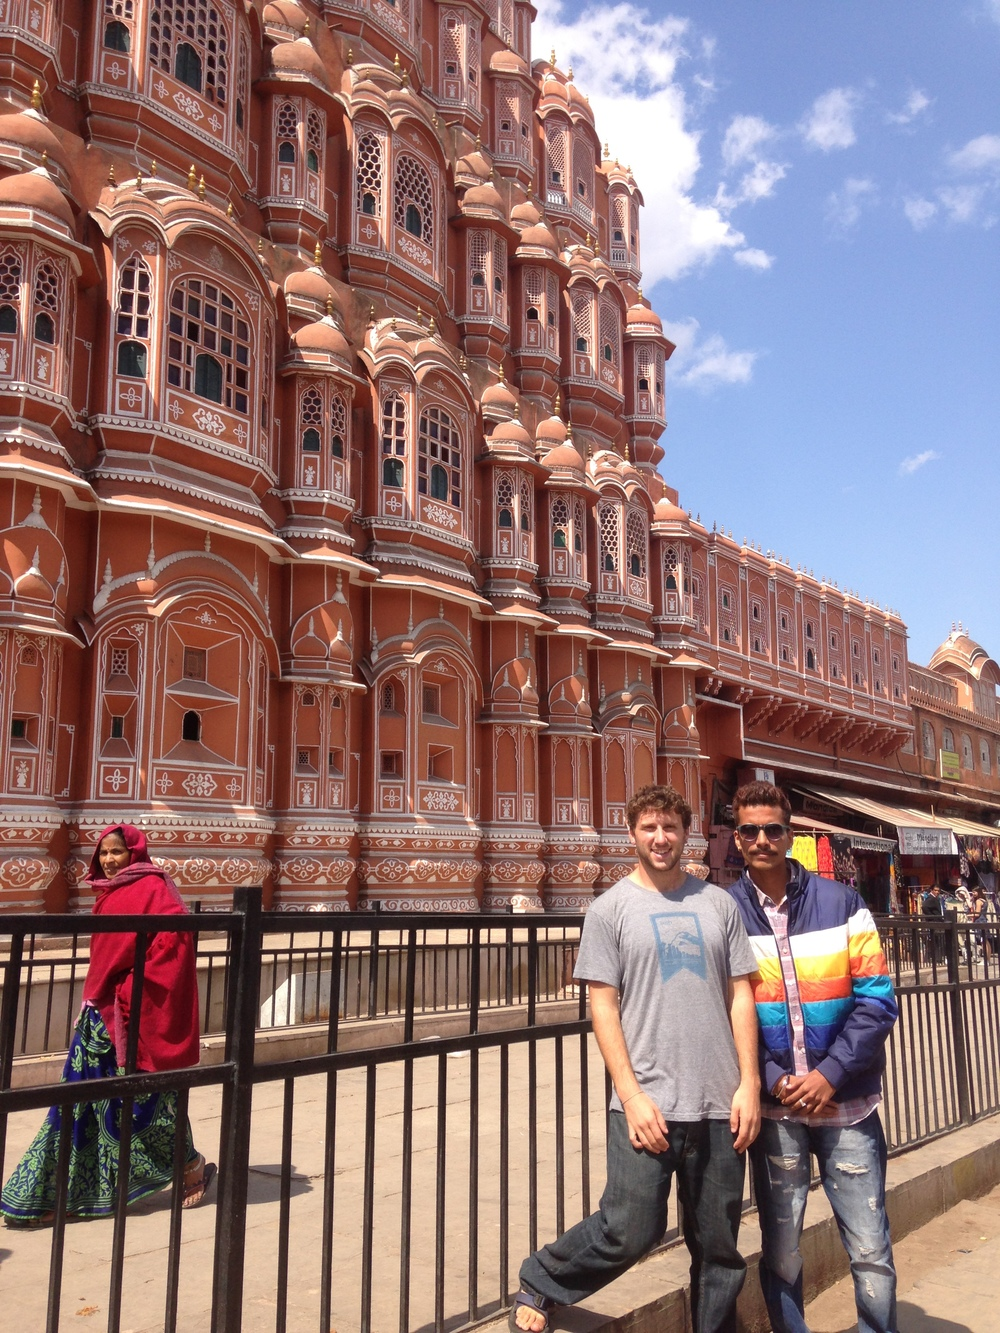 Utsav and I in front of the Hawa Mahal in Jaipur.